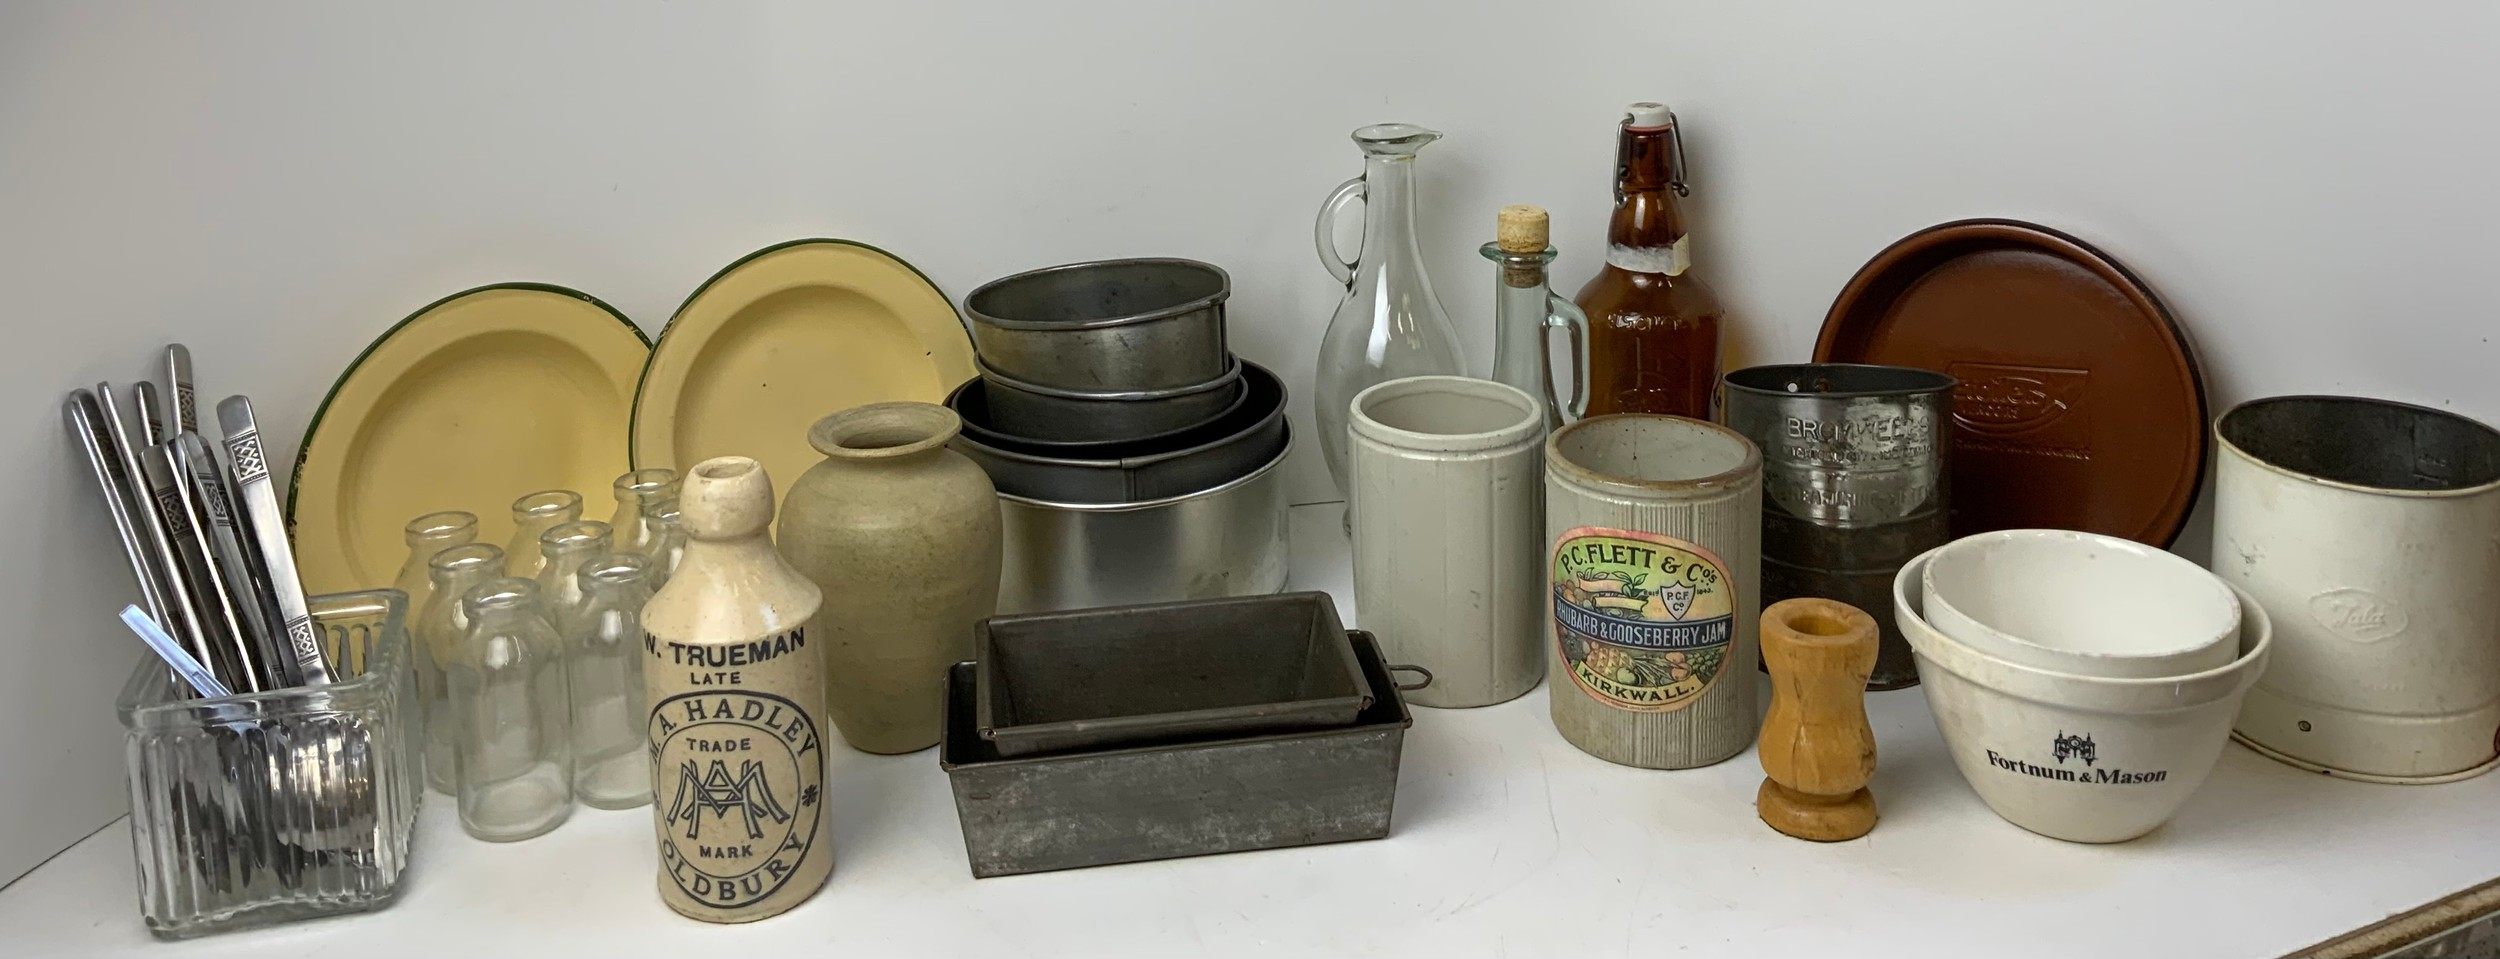 Vintage Cook Ware, Tala Sifter and Enamel Plates etc